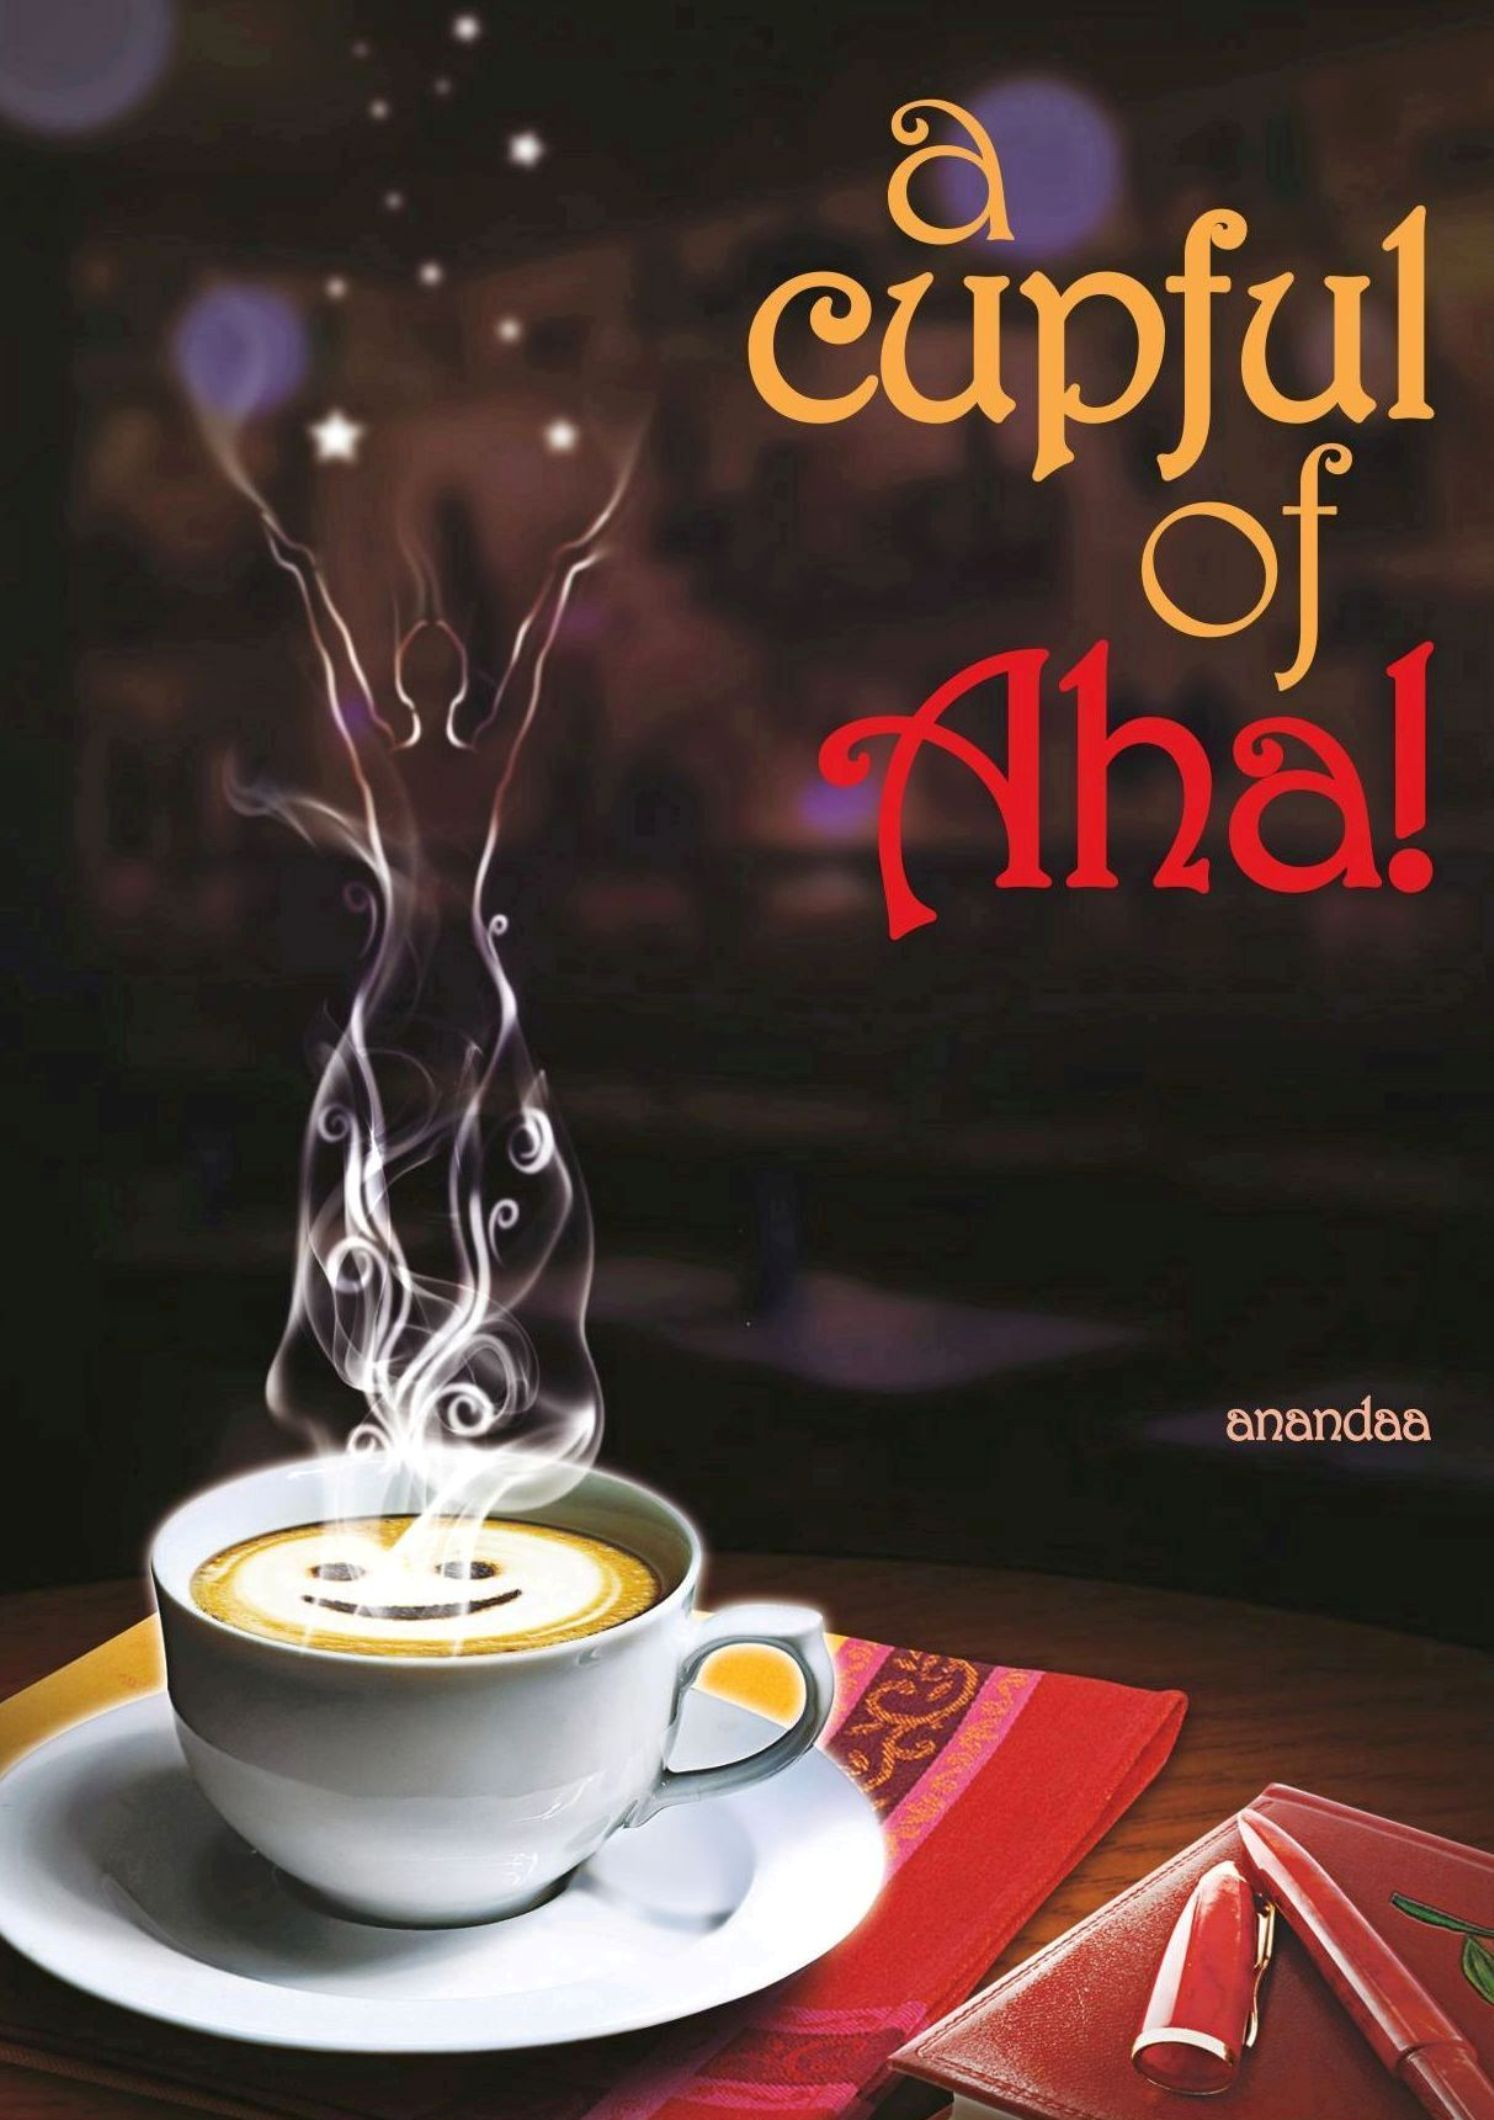 A Quirky Novel by Author Anandaa